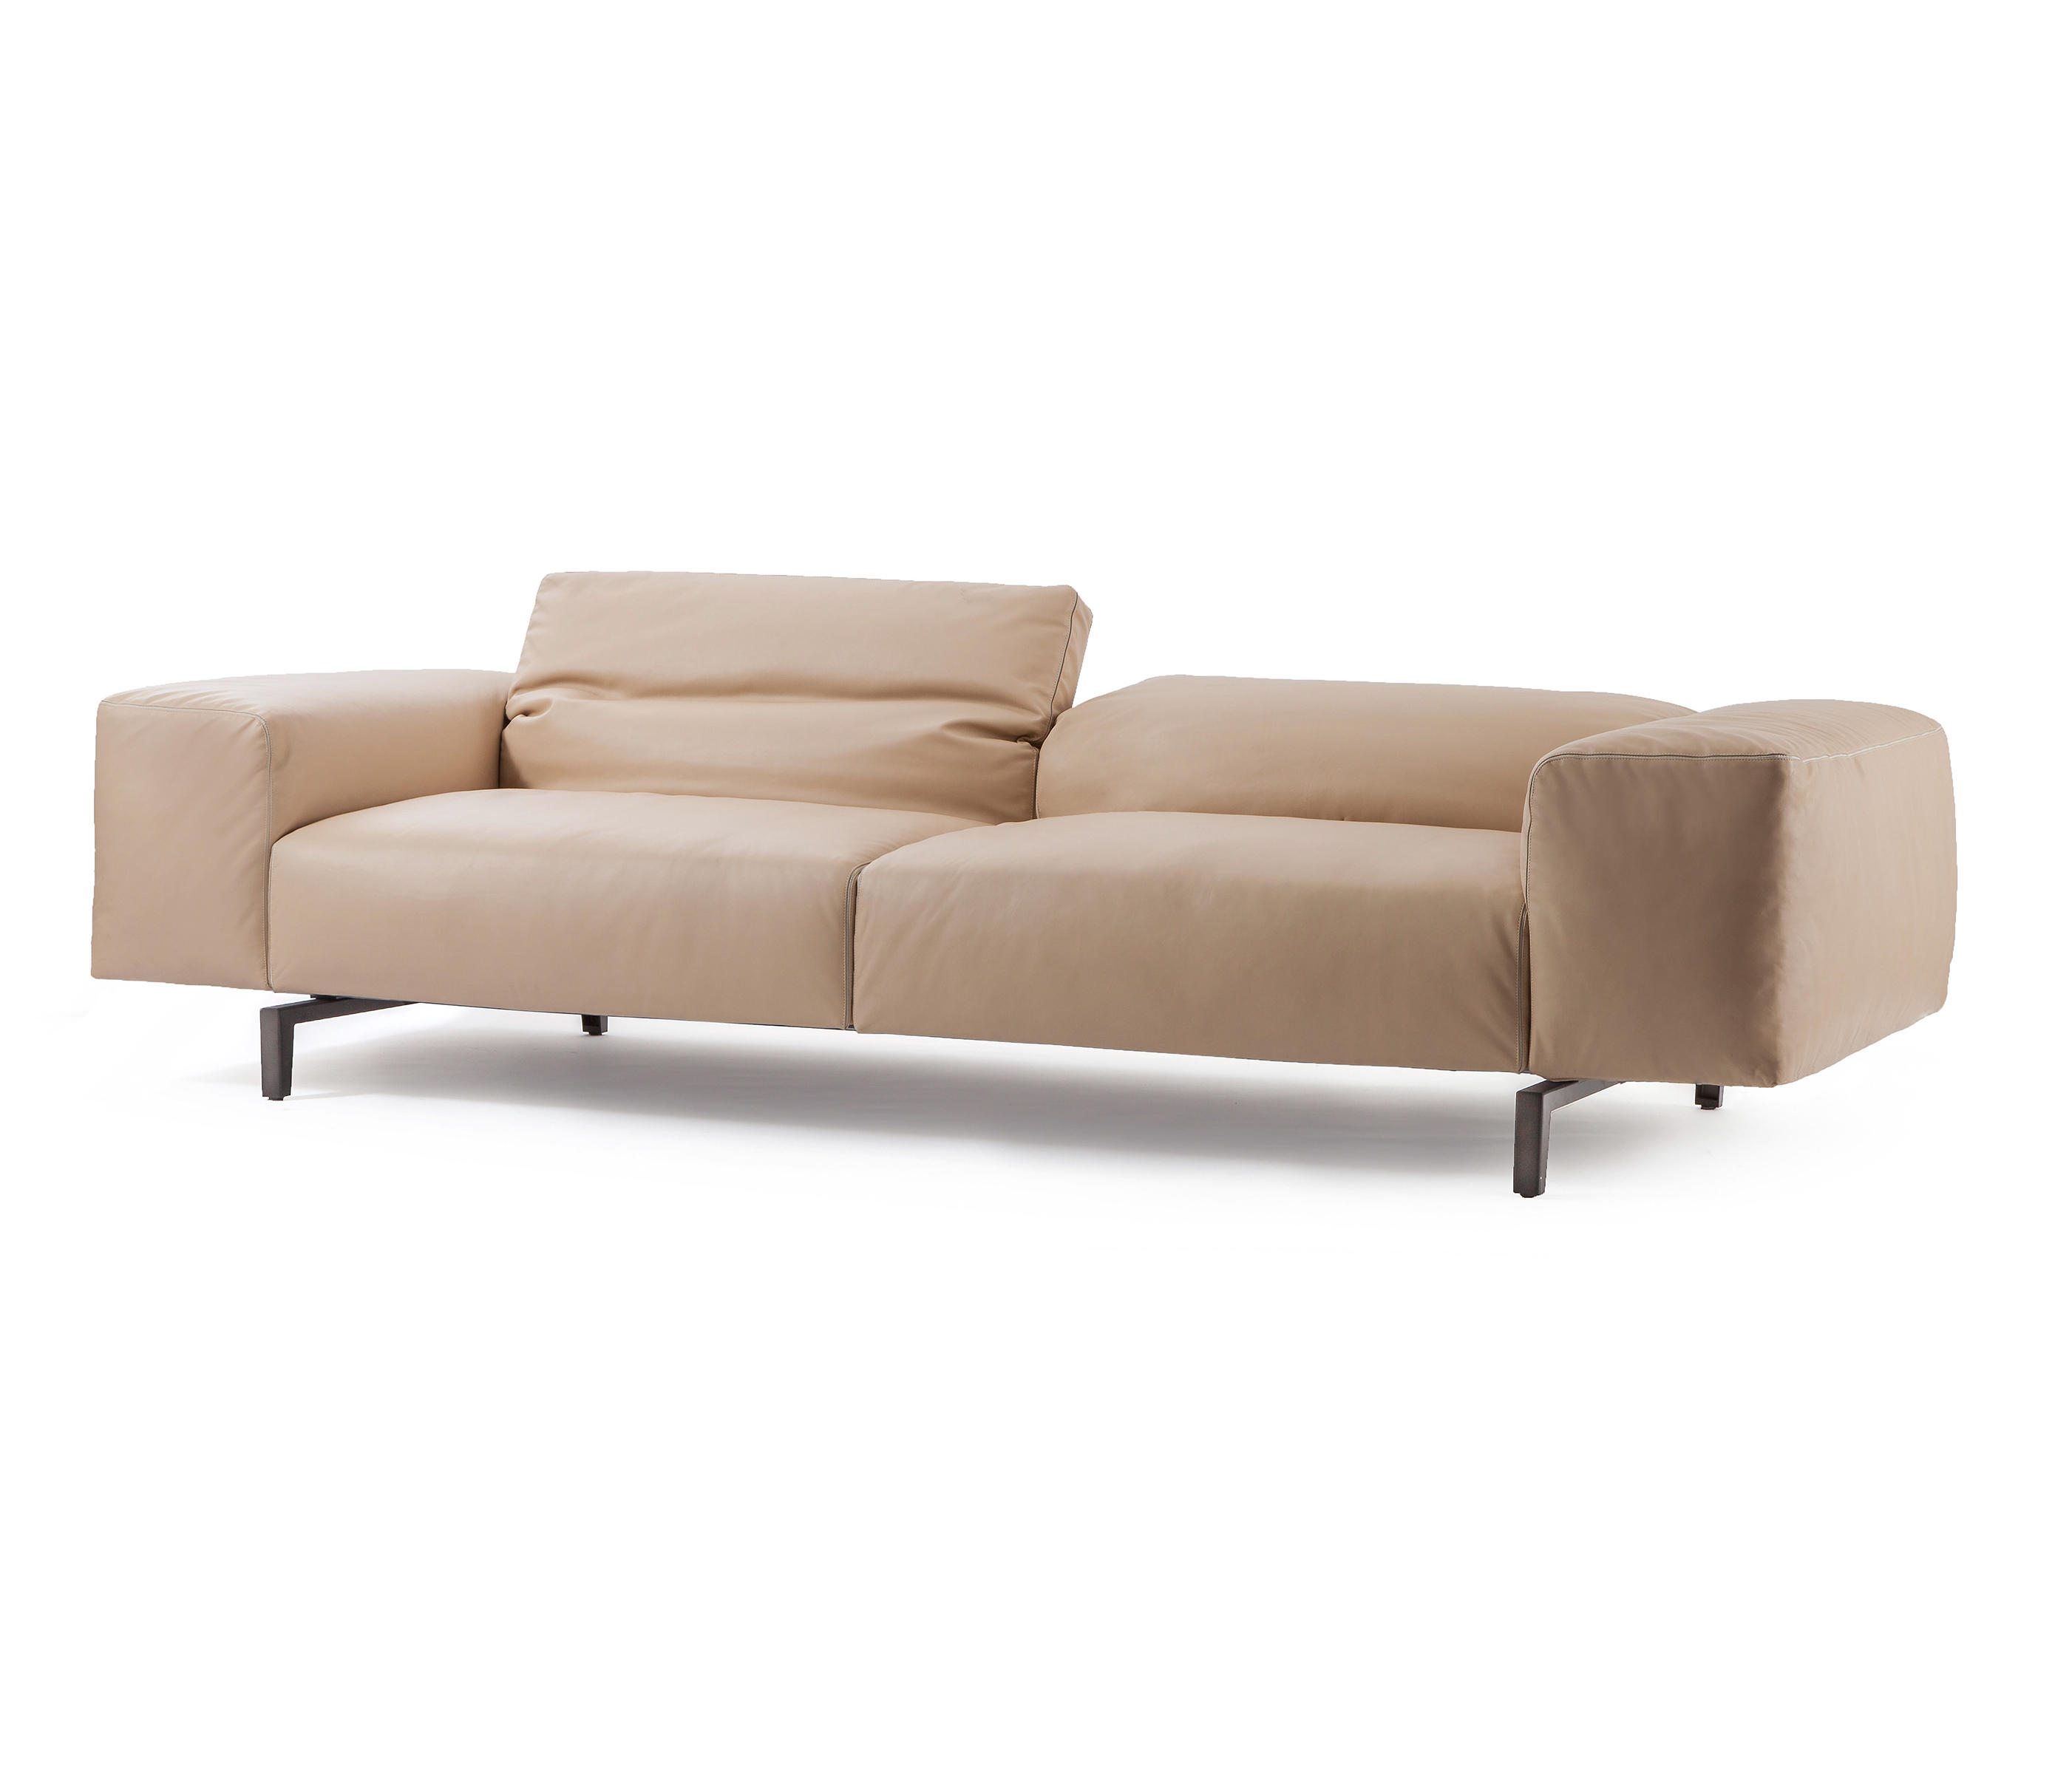 204 02 Scighera Two Seater Sofa Lounge Sofas From